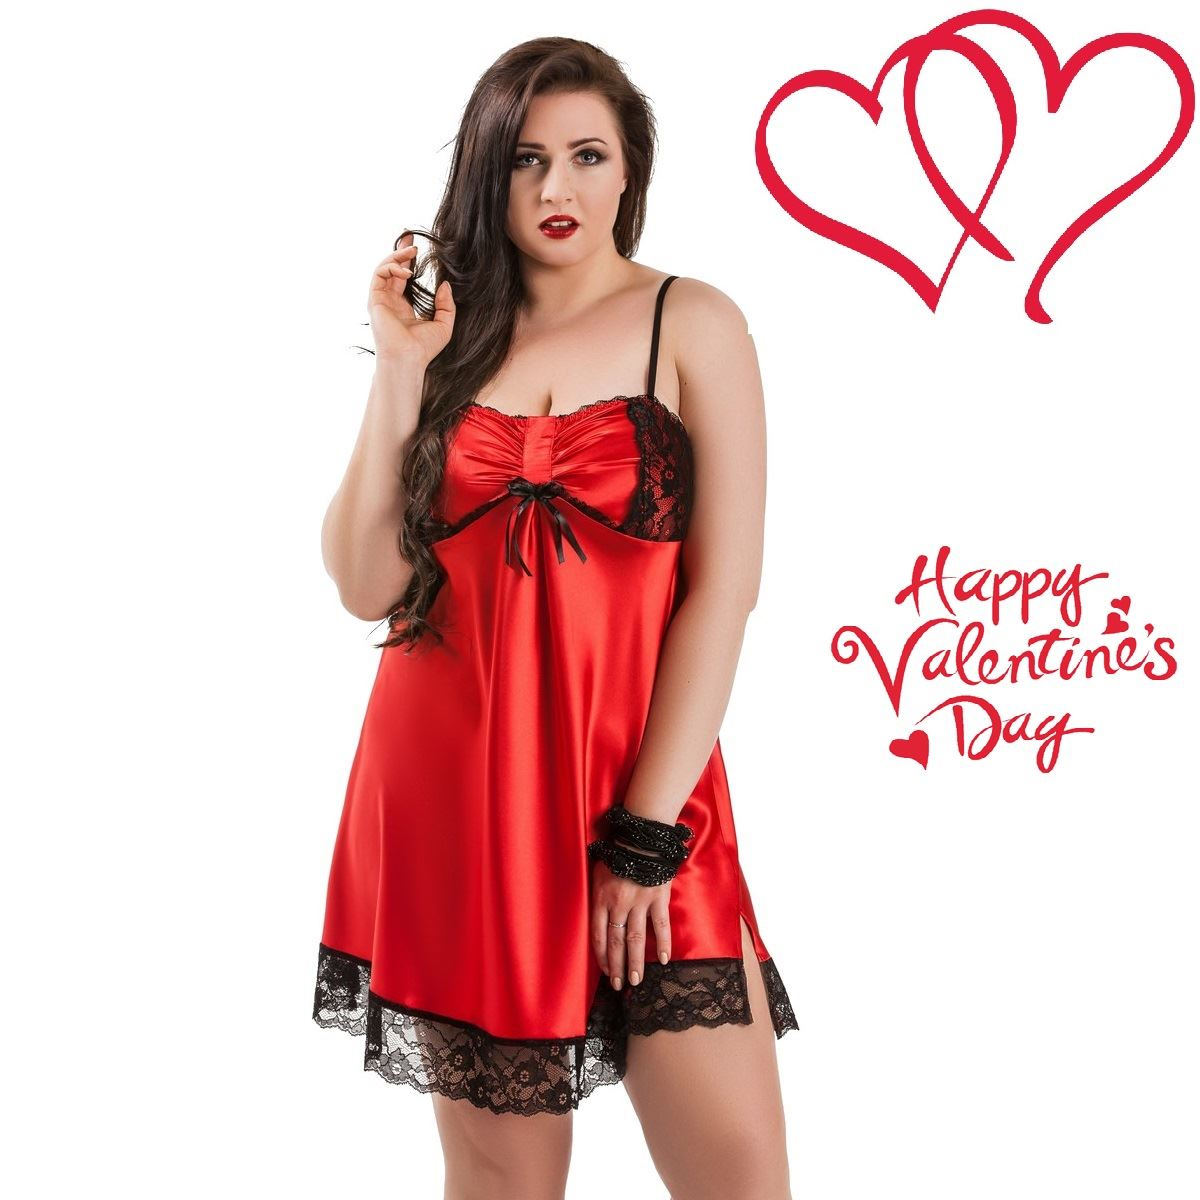 a75bc1d6204 Nine X - Xmas Gift - Sexy Lingerie Plus Size Underwear 8-24 Babydoll Dress